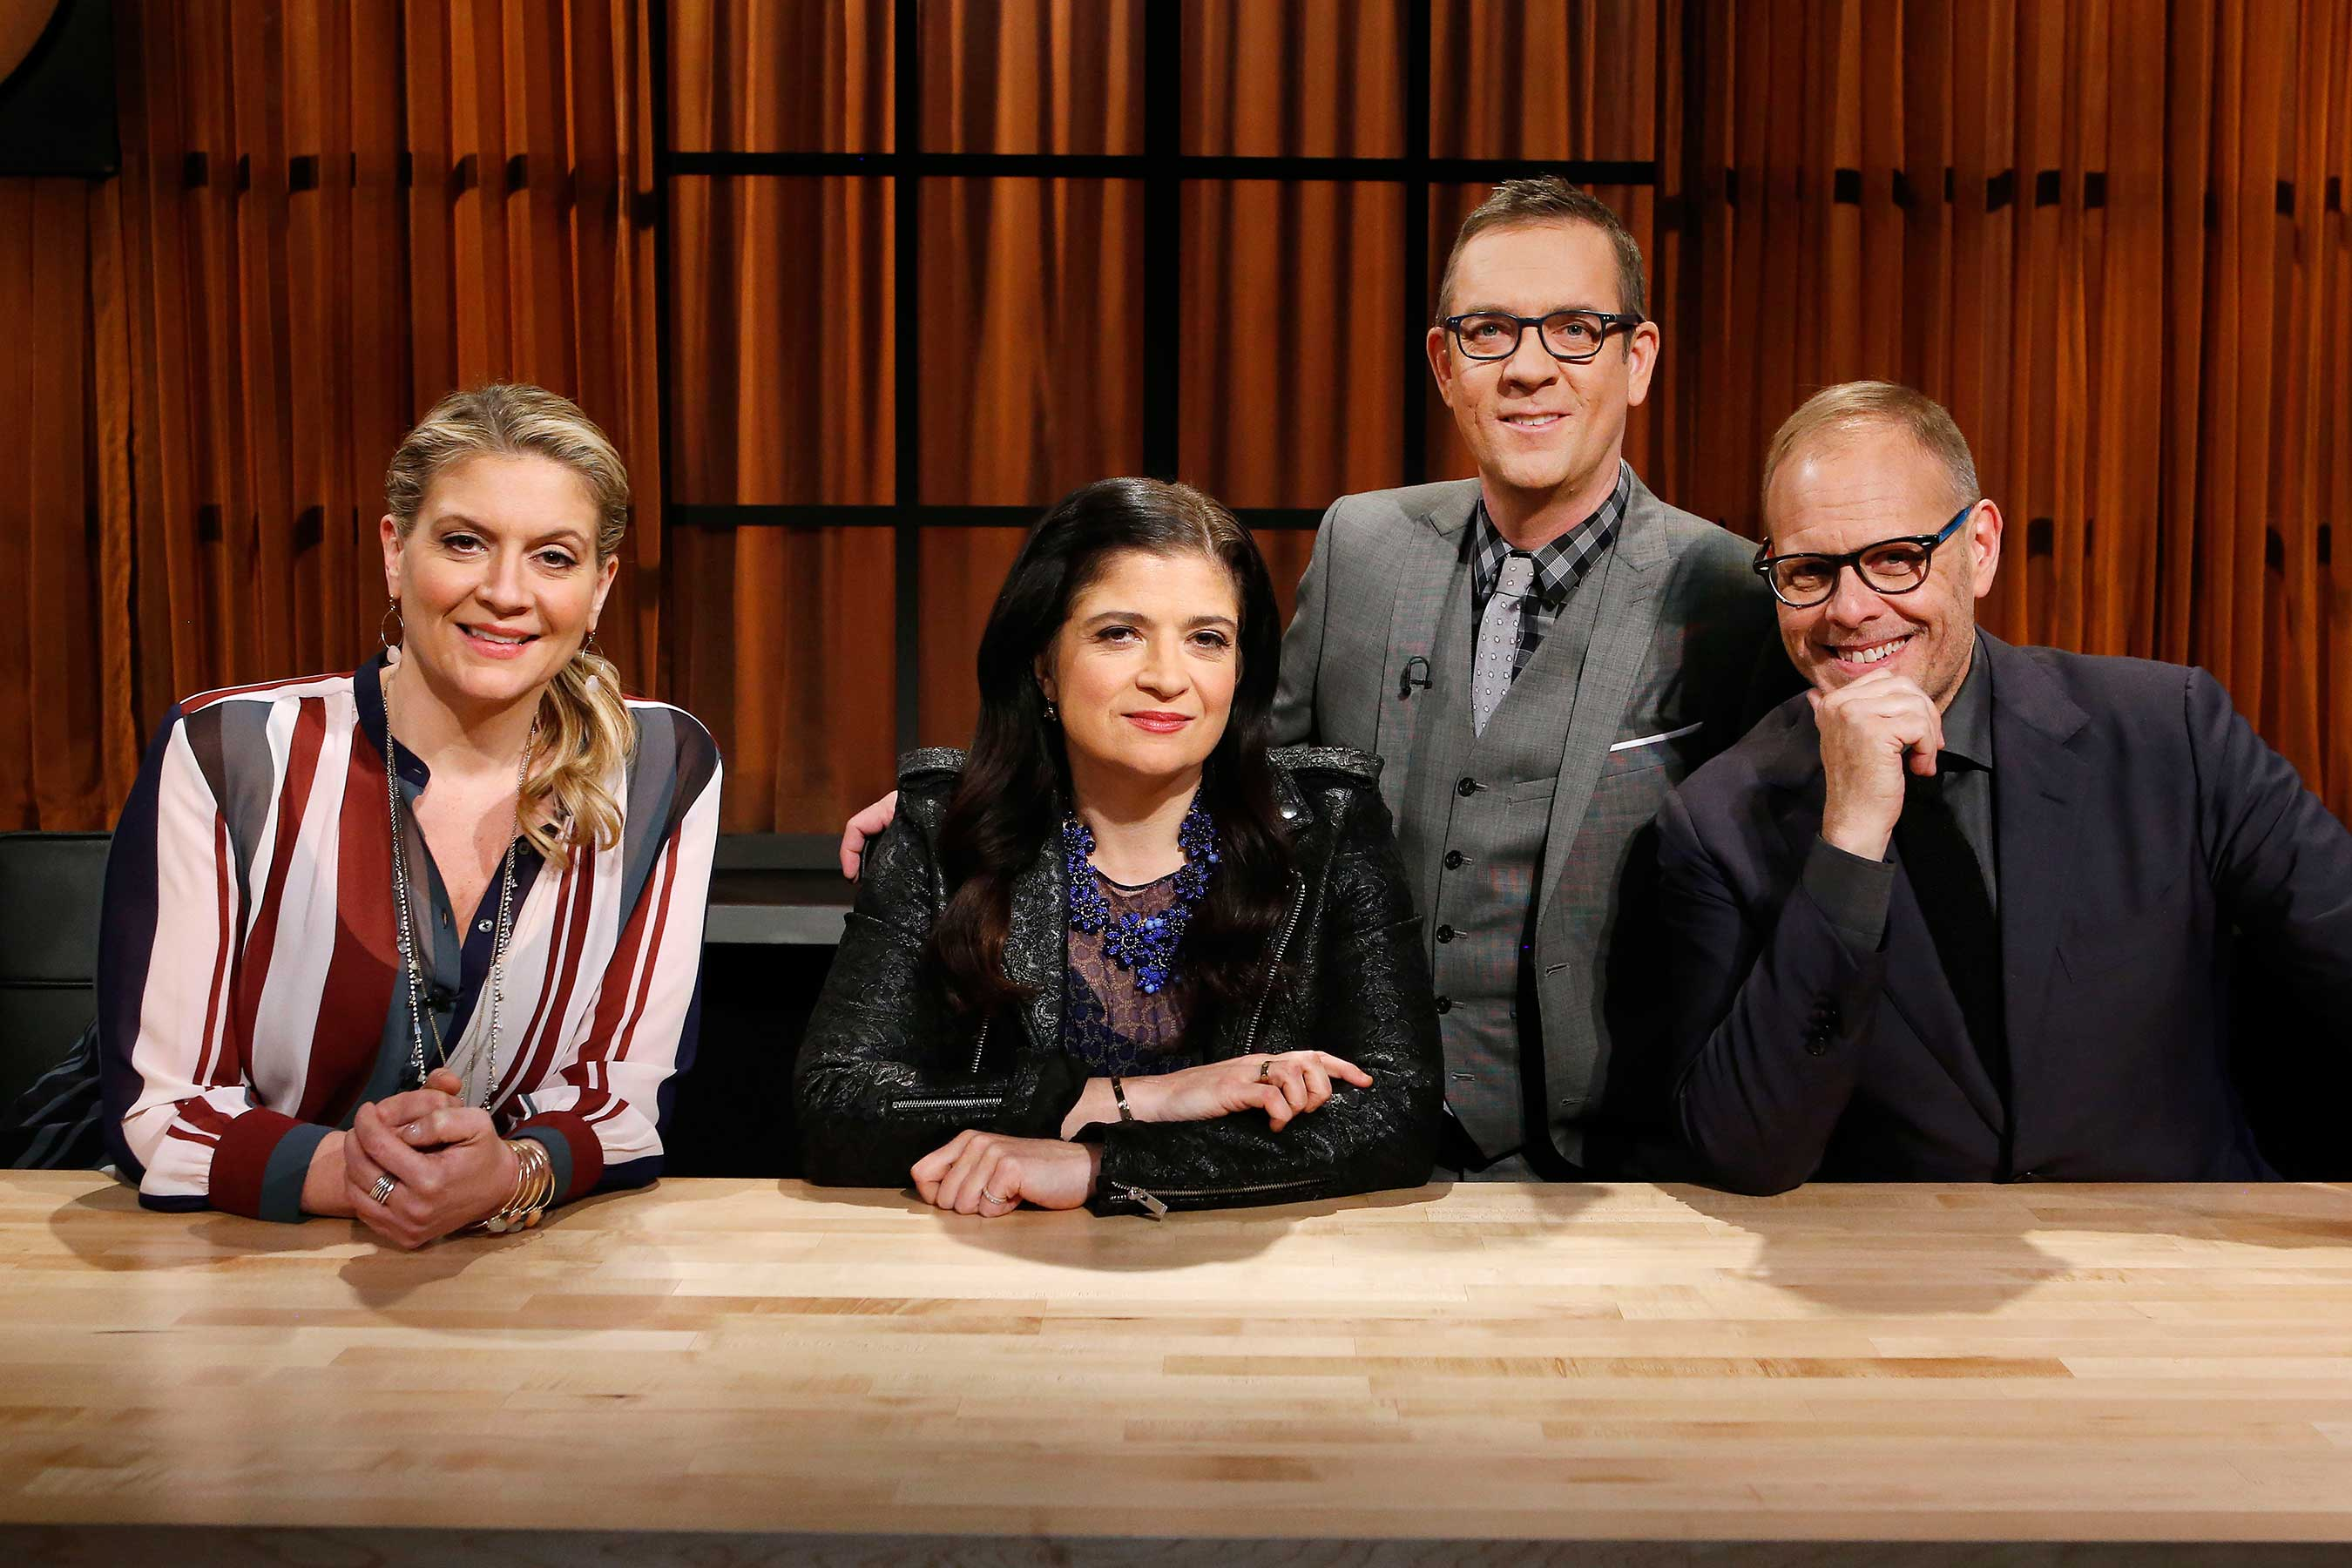 **Tune-in Alert** Alton Brown Takes Over The Chopped Kitchen In Chopped: Alton's Challenge